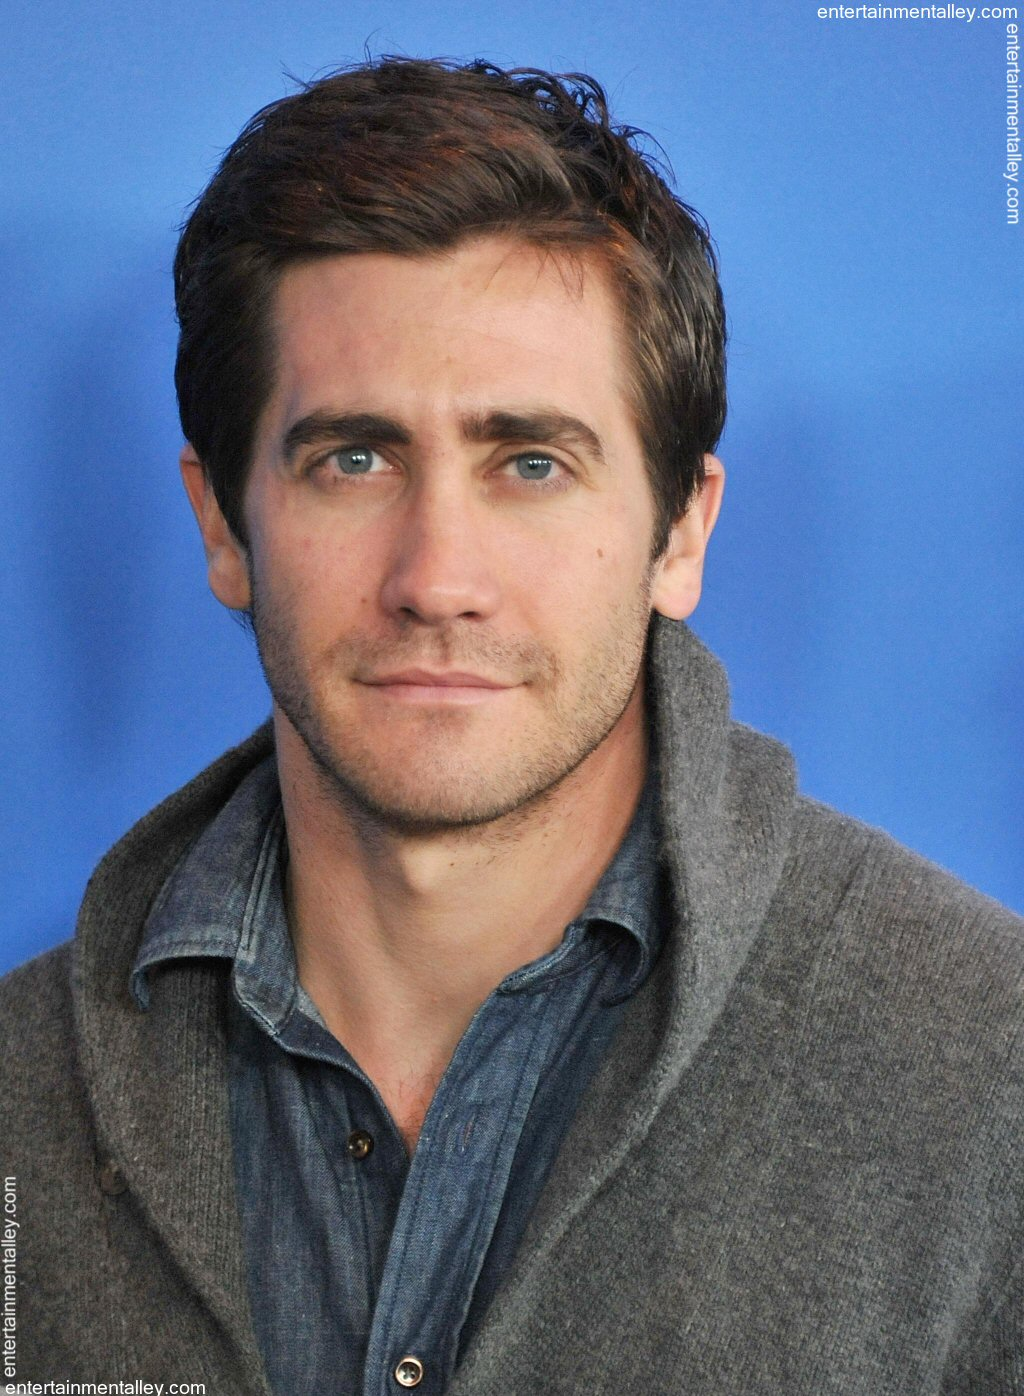 ALL ABOUT HOLLYWOOD ST... Jake Gyllenhaal